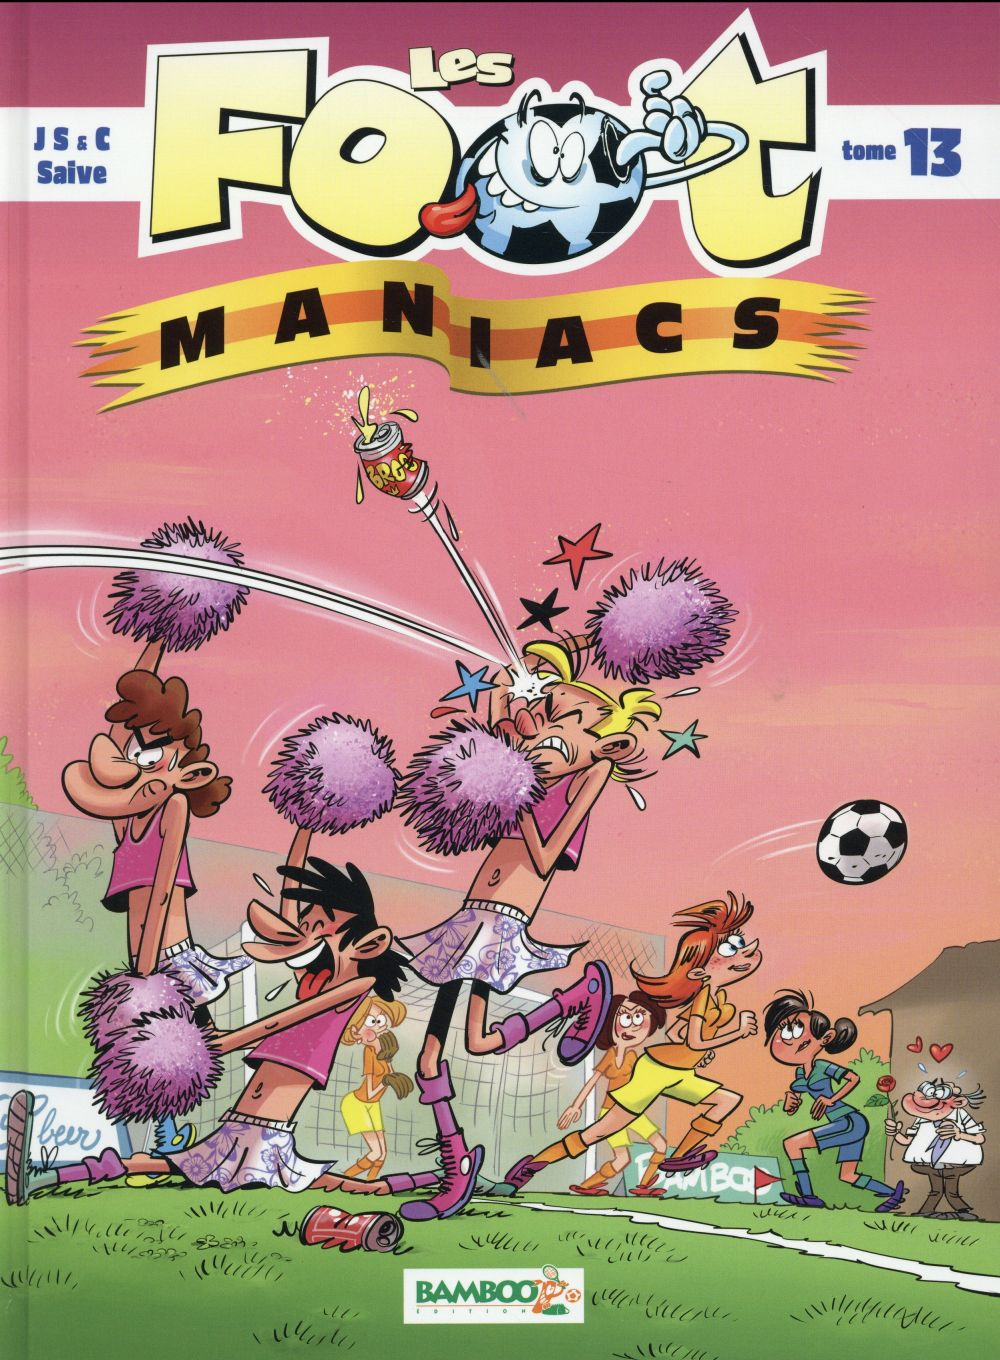 LES FOOT MANIACS - TOME 13 Cazenove Christophe Bamboo